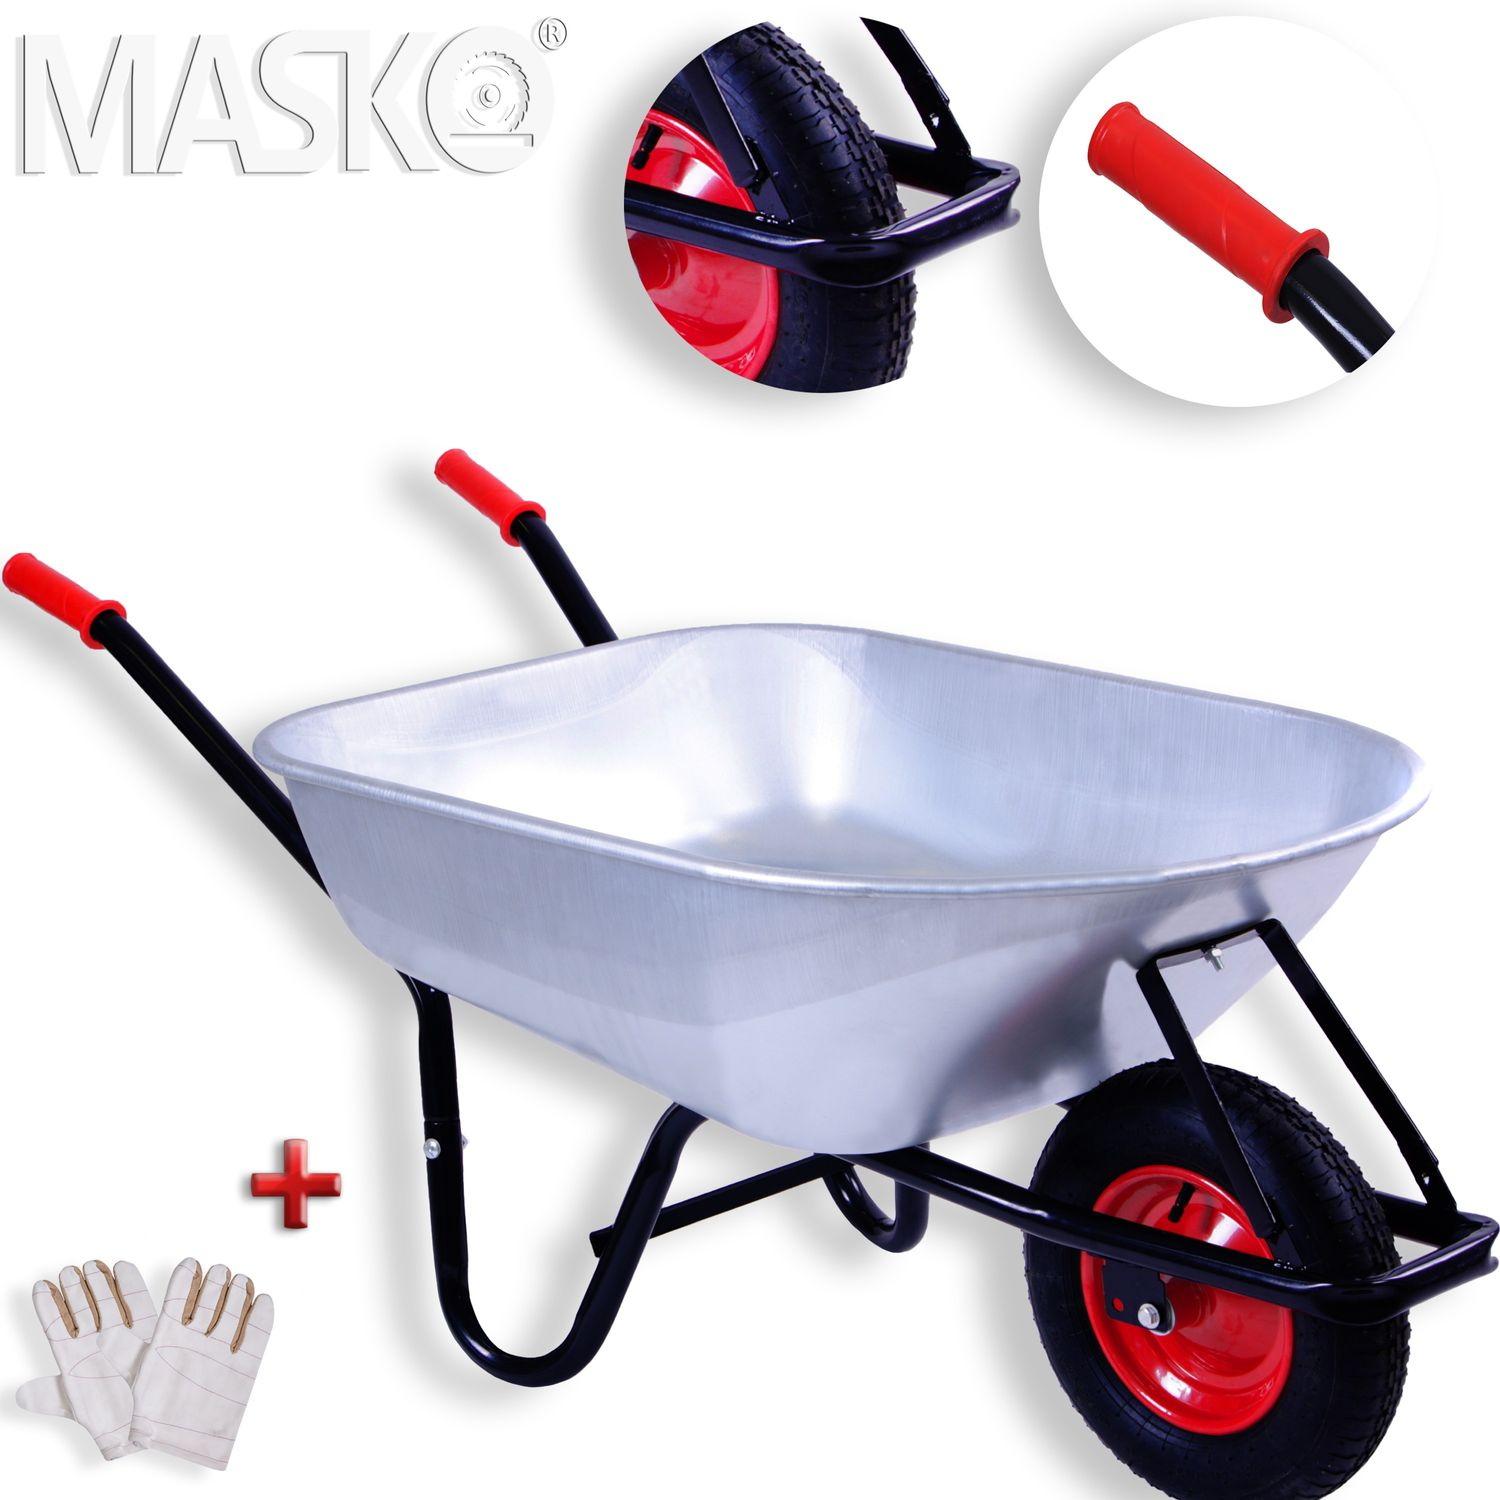 masko wheelbarrow 100 liter garden barrow 200 kg garden wheelbarrow galvanised ebay. Black Bedroom Furniture Sets. Home Design Ideas